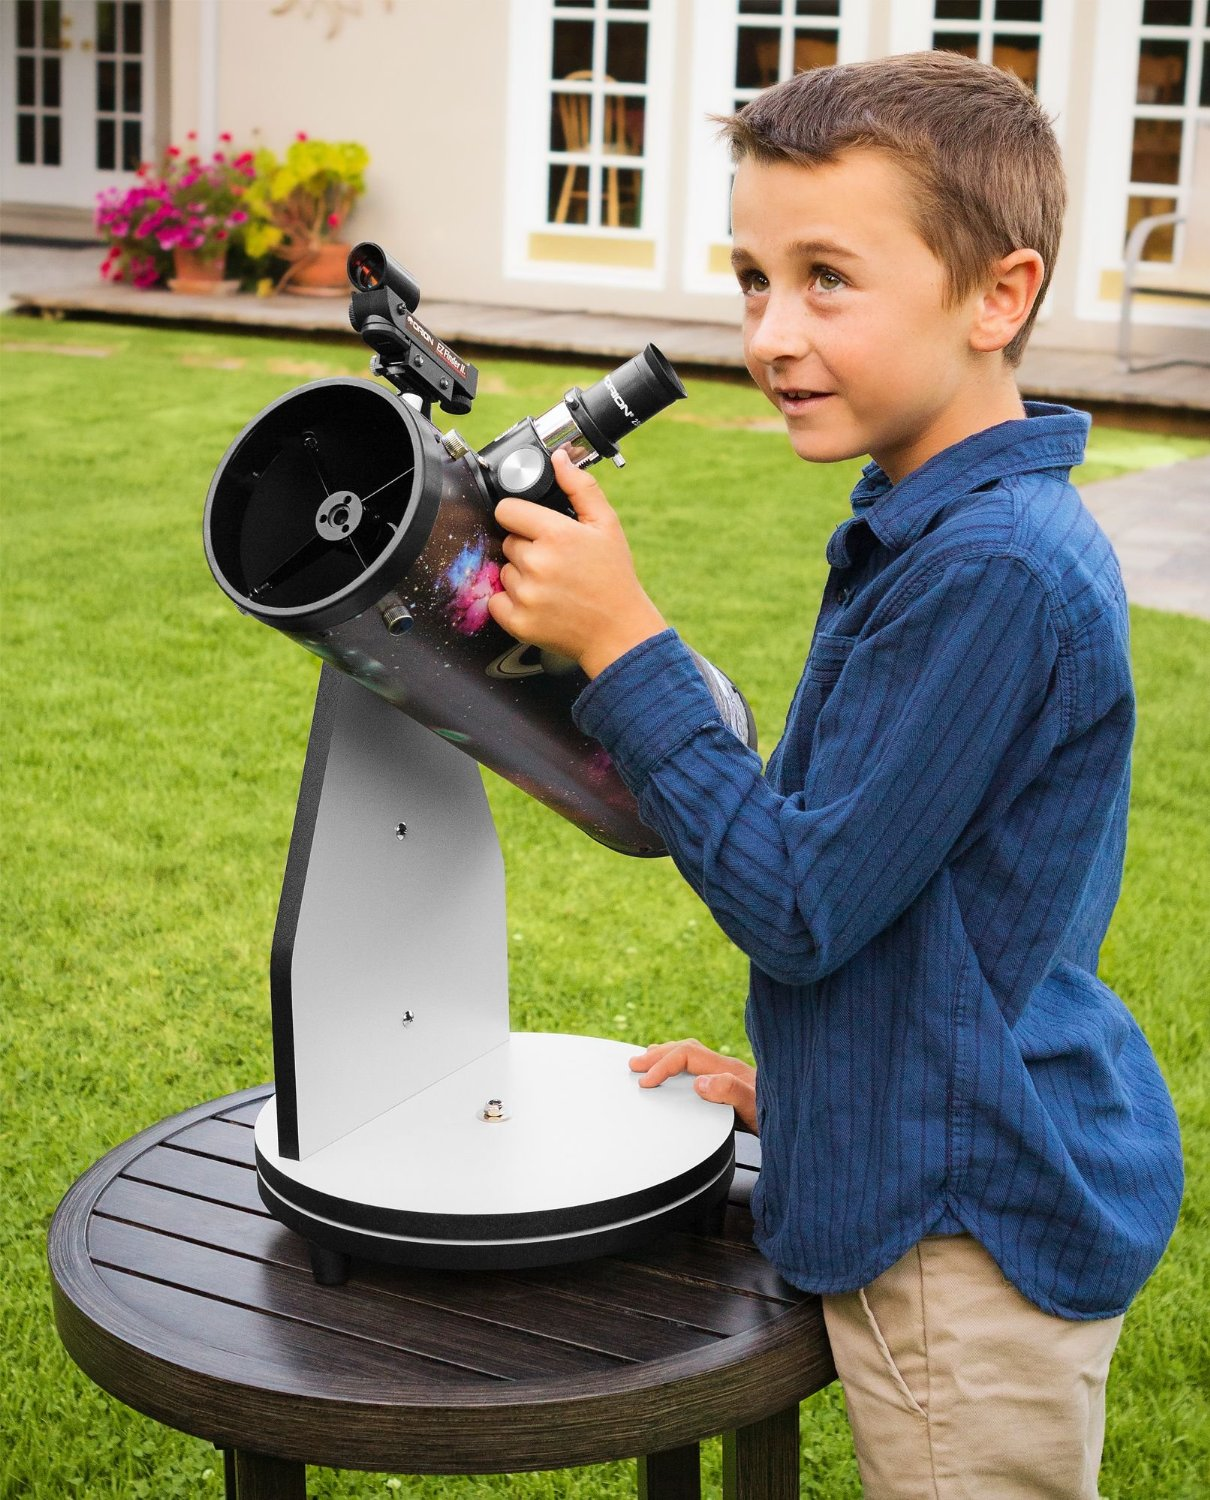 I want to buy a first telescope for a child